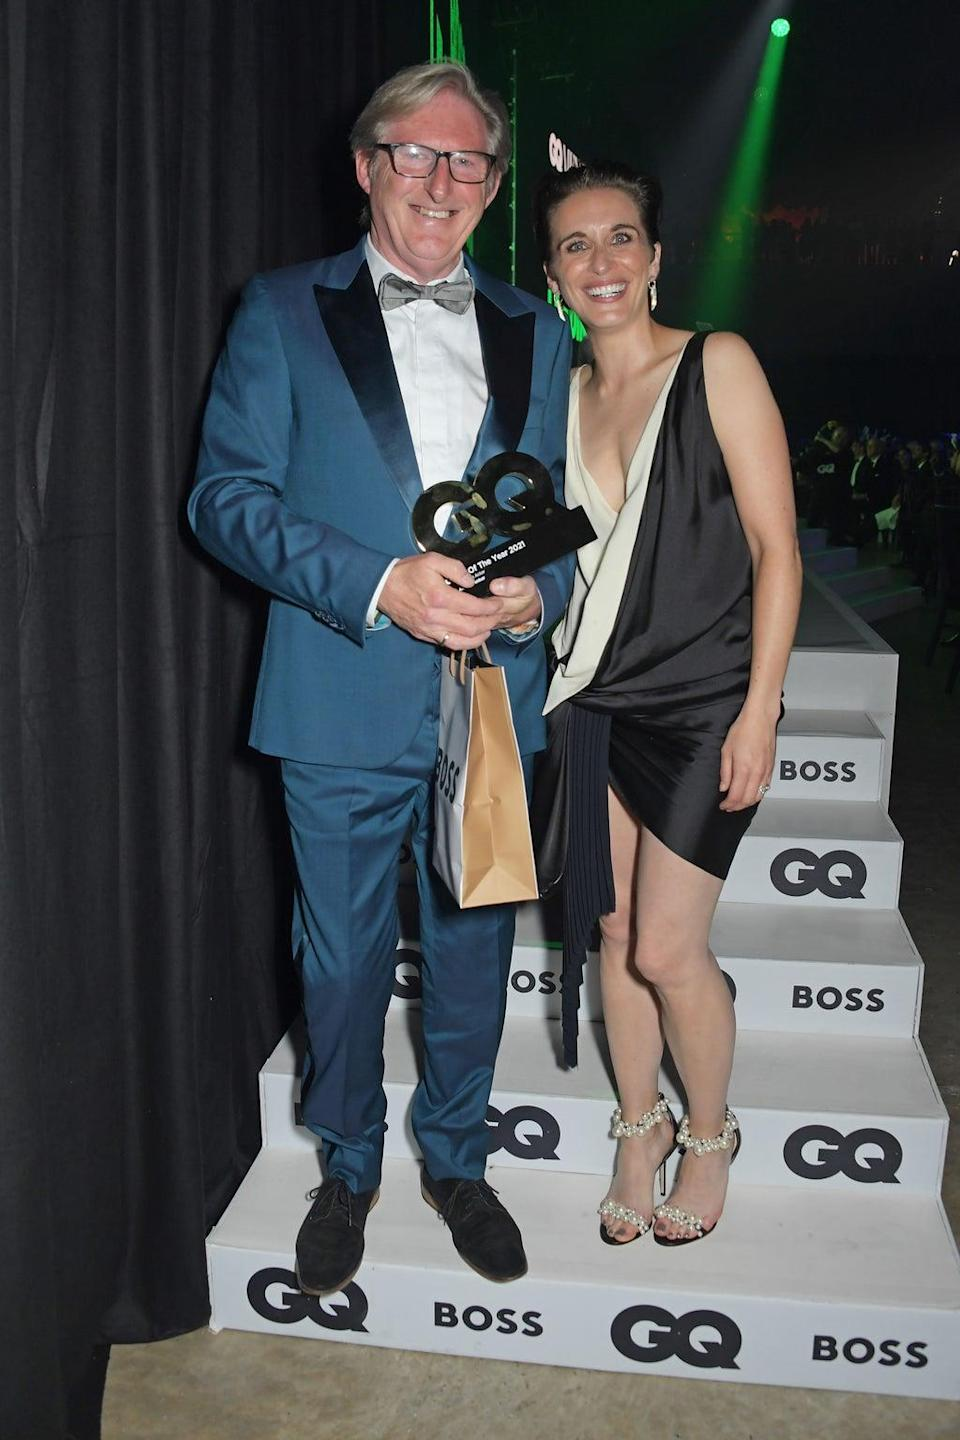 Adrian Dunbar, winner of the Television Actor award, and Vicky McClure (Dave Benett)